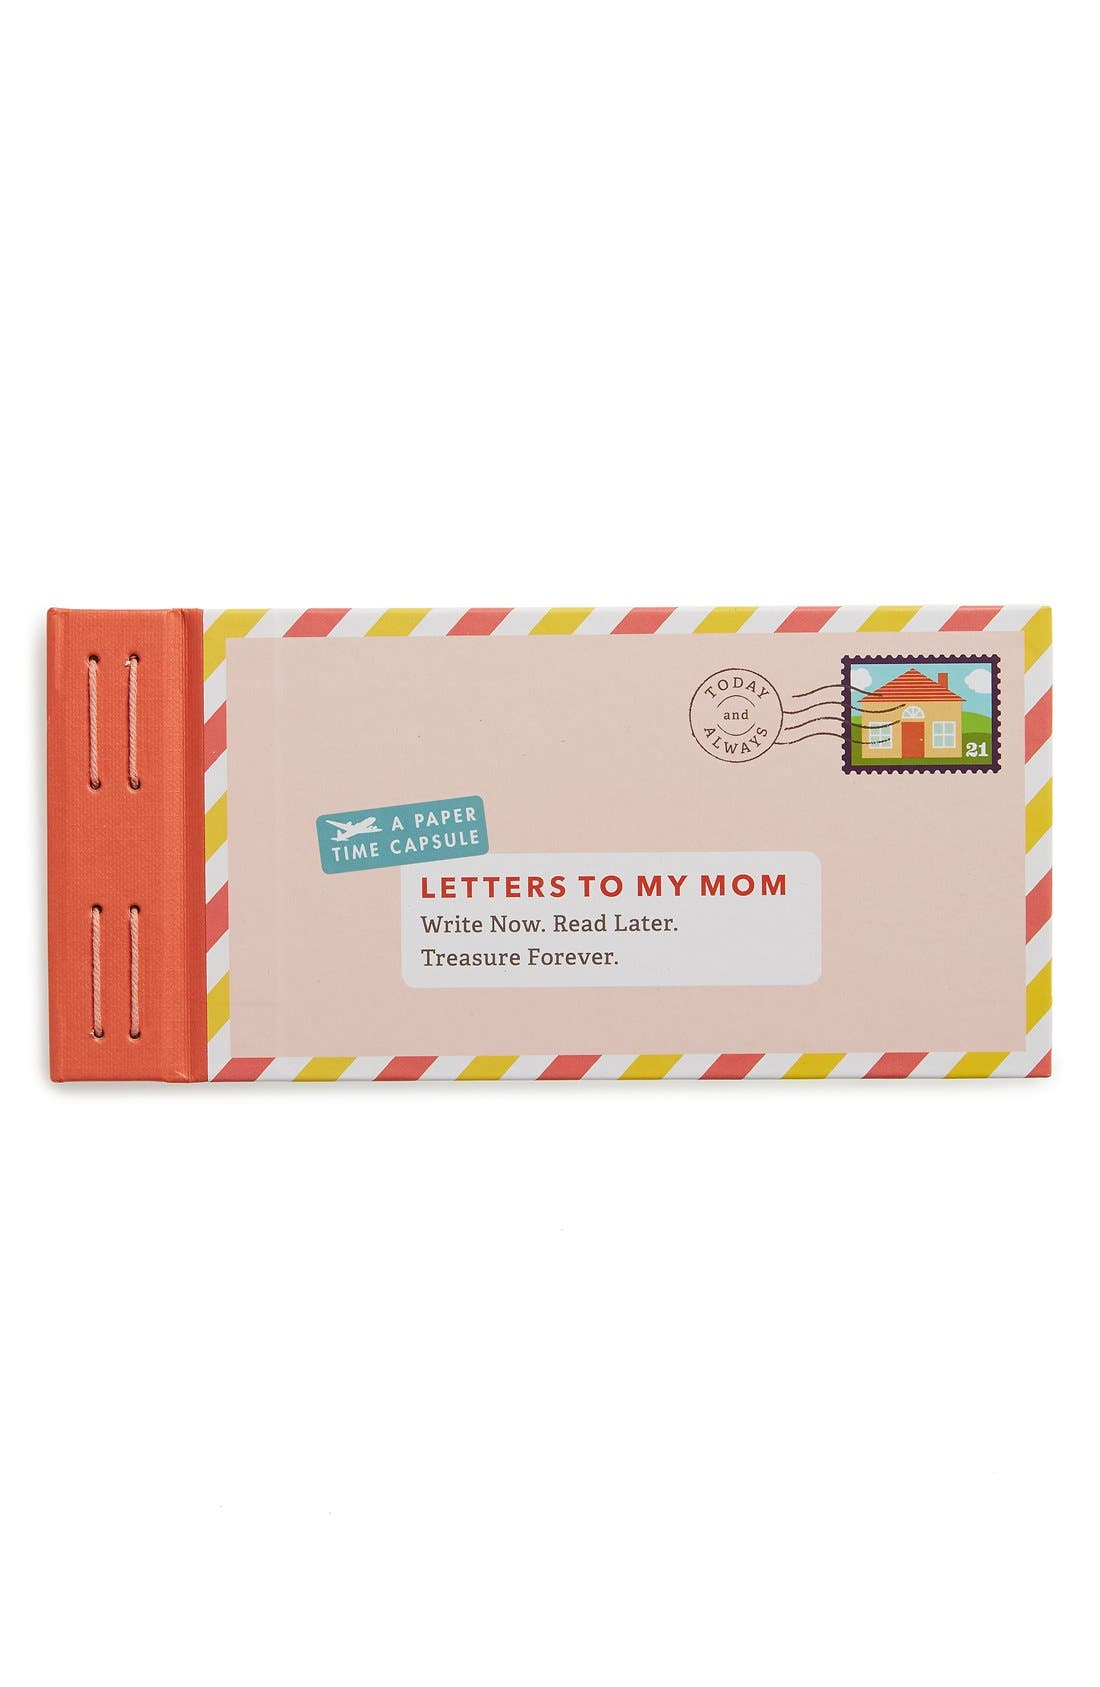 Letters To My Mom  A Paper Time Capsule Book  Nordstrom